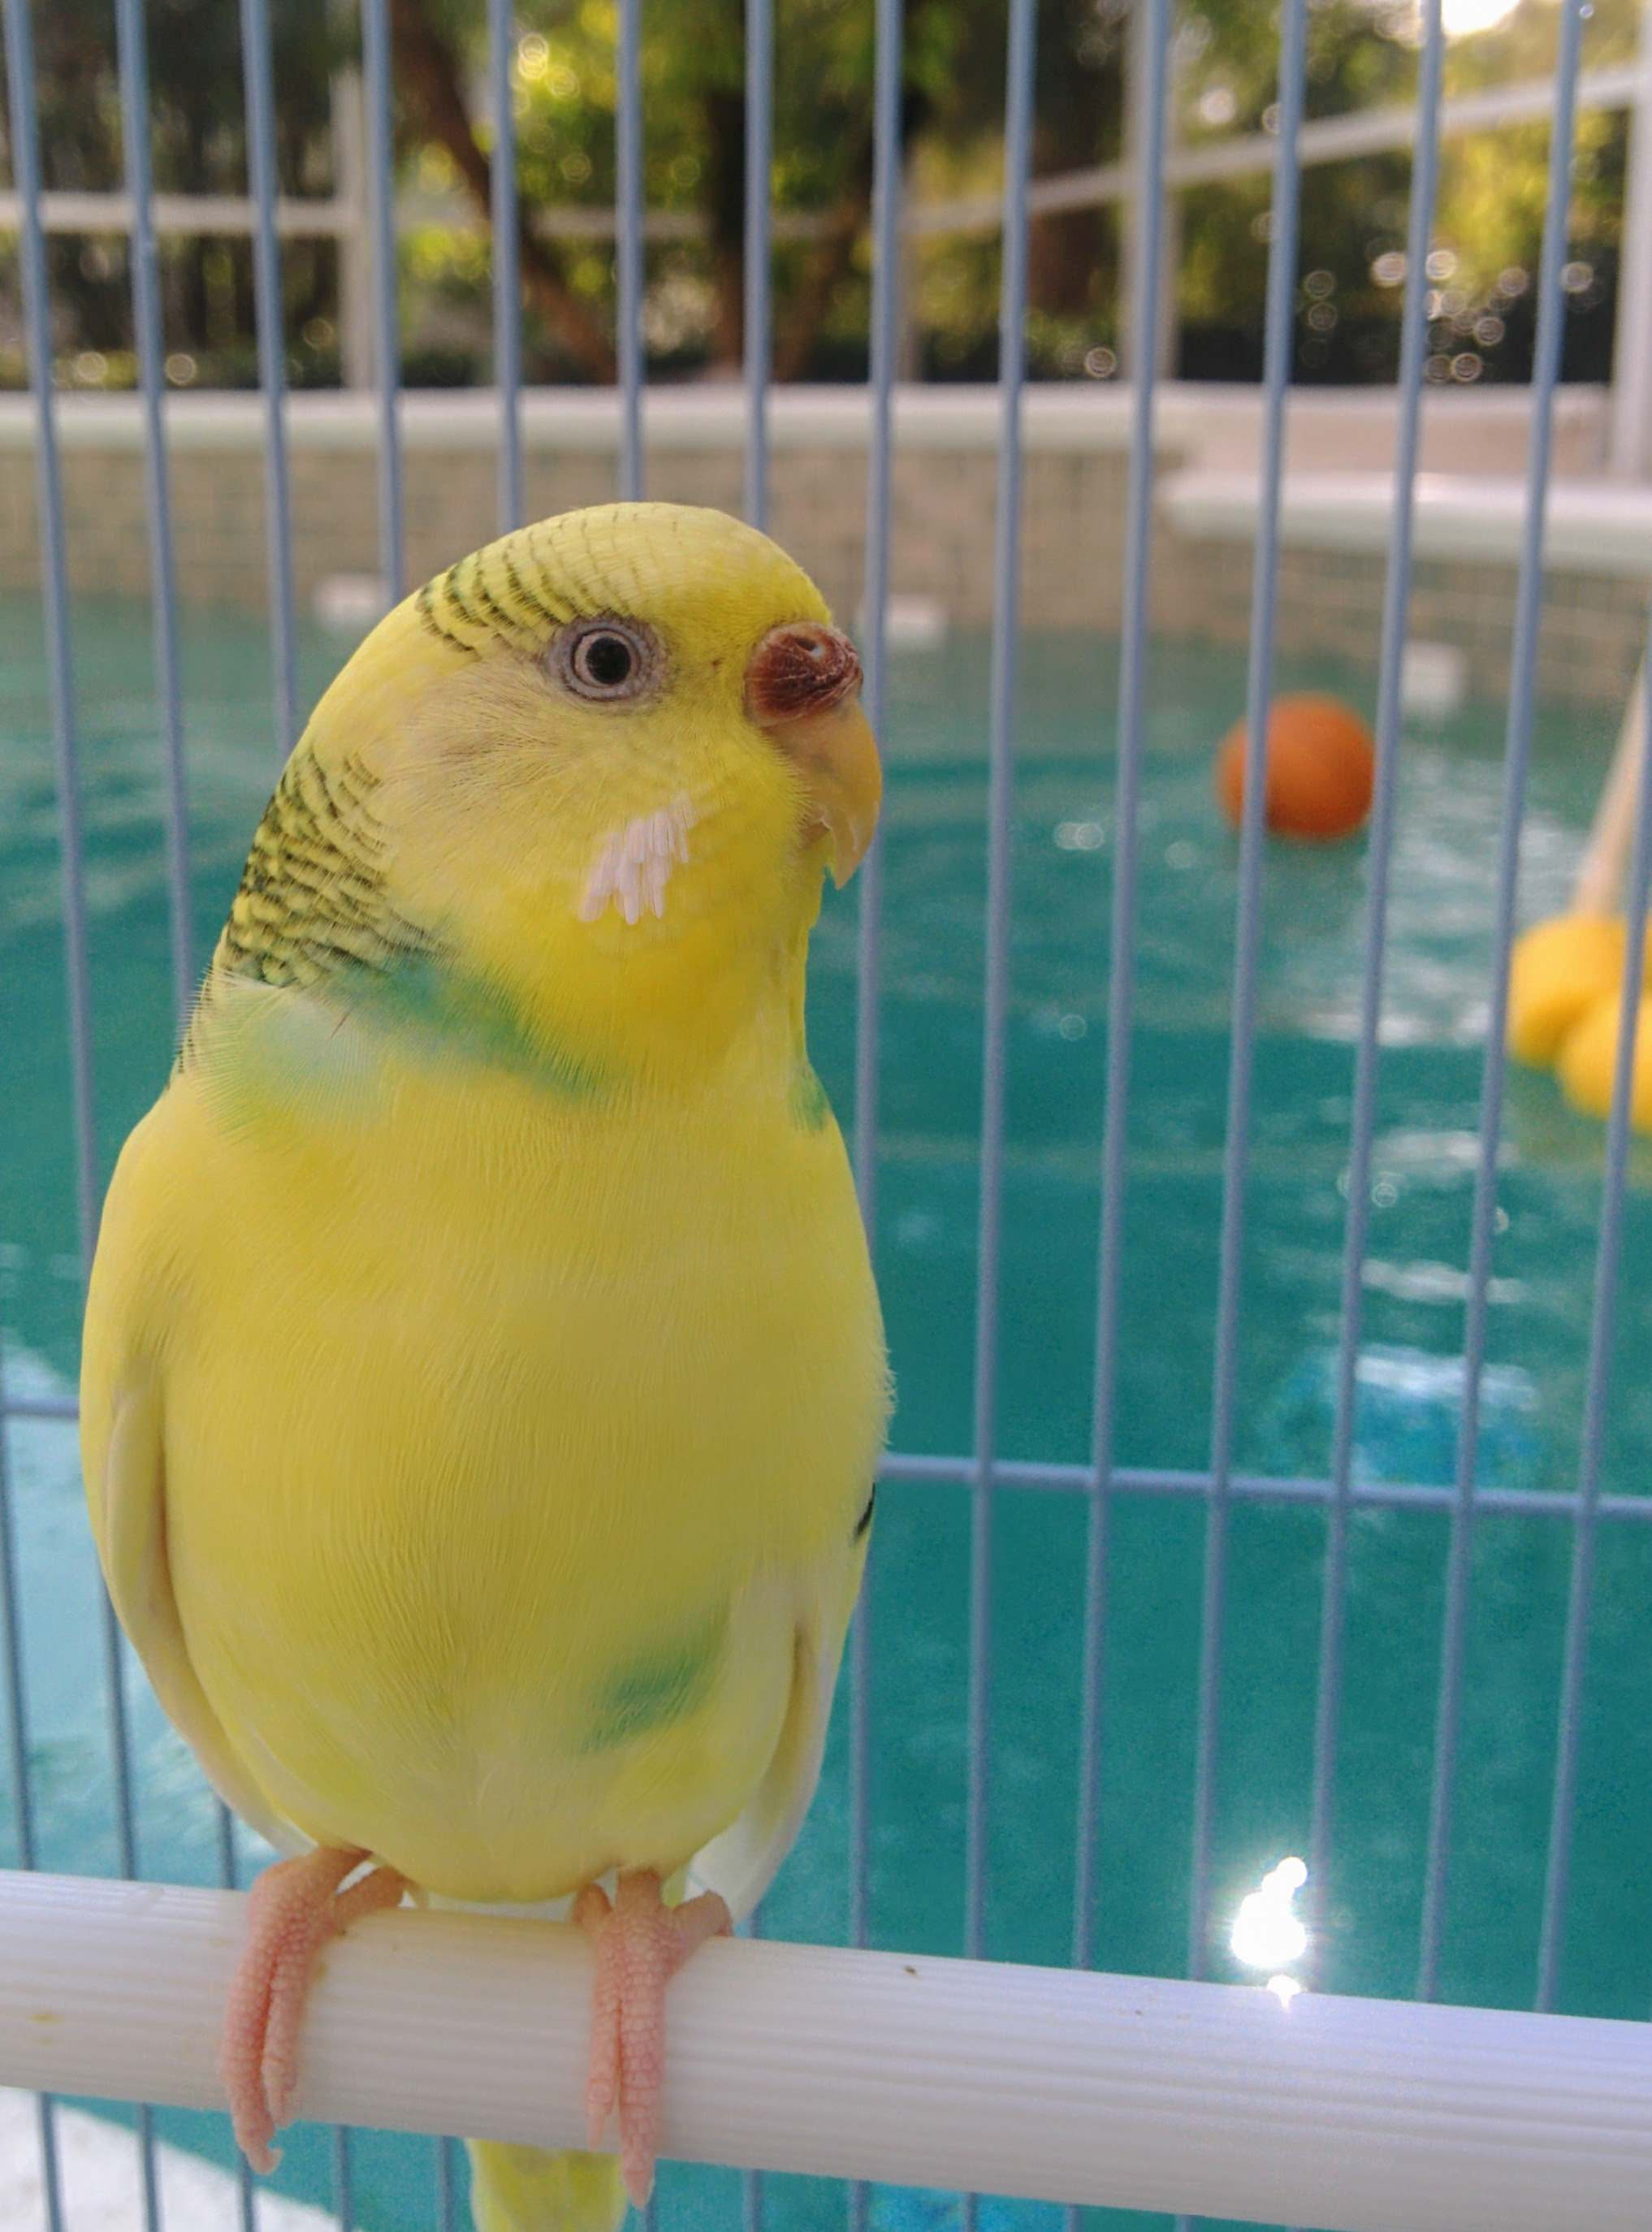 Our pet budgie poolside.